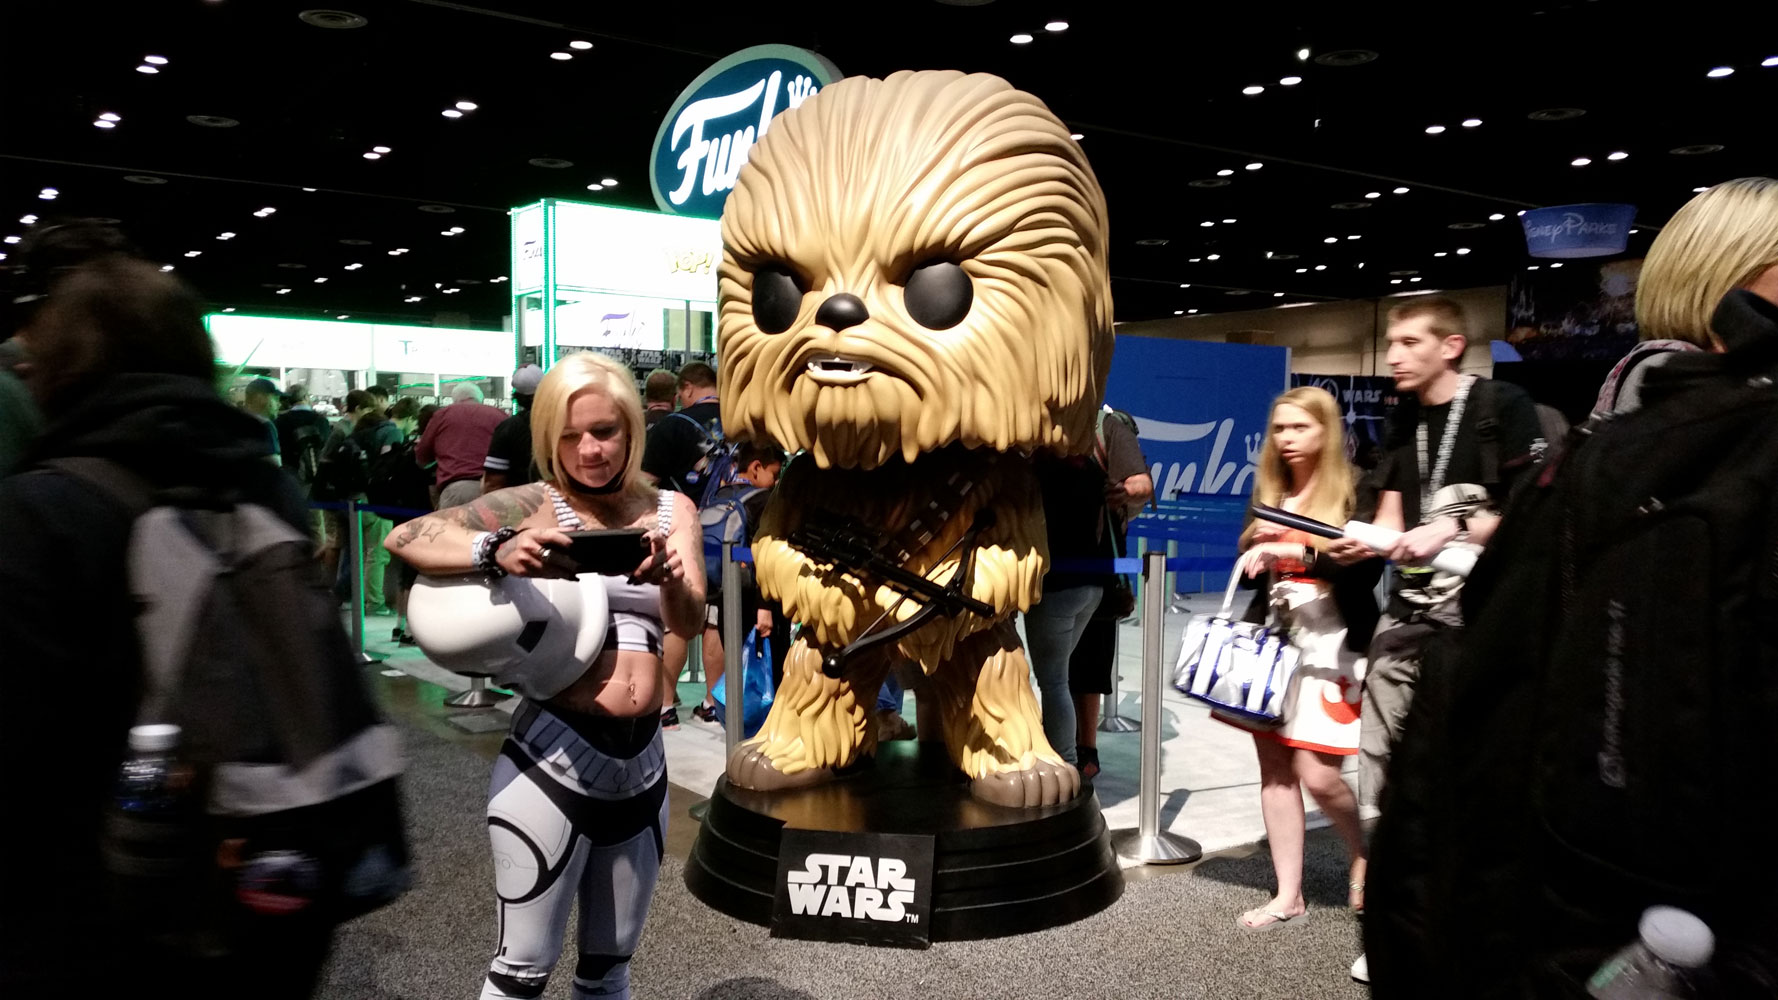 Cute Stormtrooper Girl with Giant Chewie Funko Pop